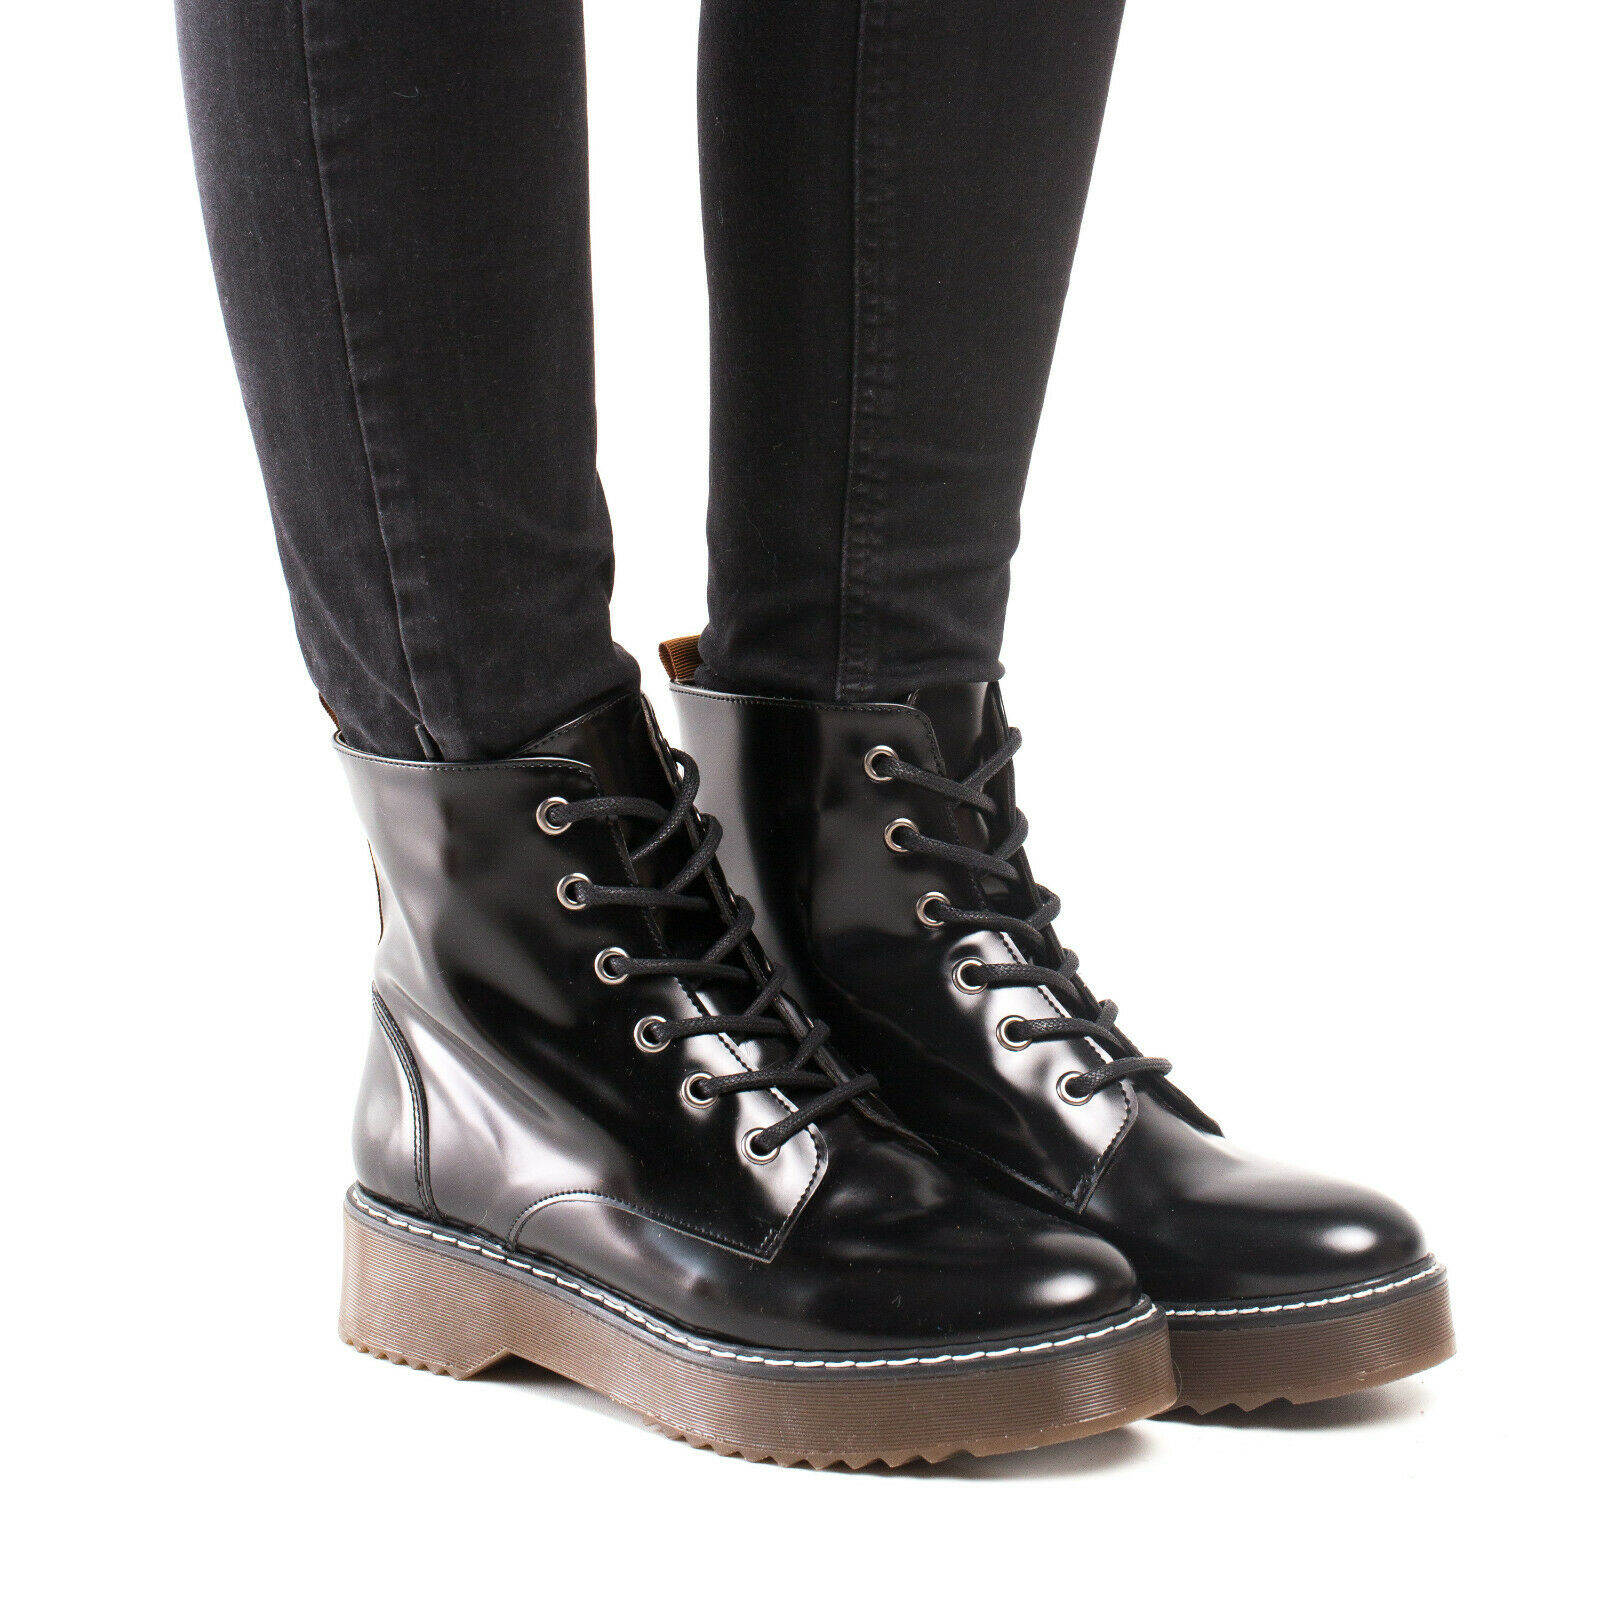 Ankle boot Lace-Up on black vegan leather style derby combat work biker urban